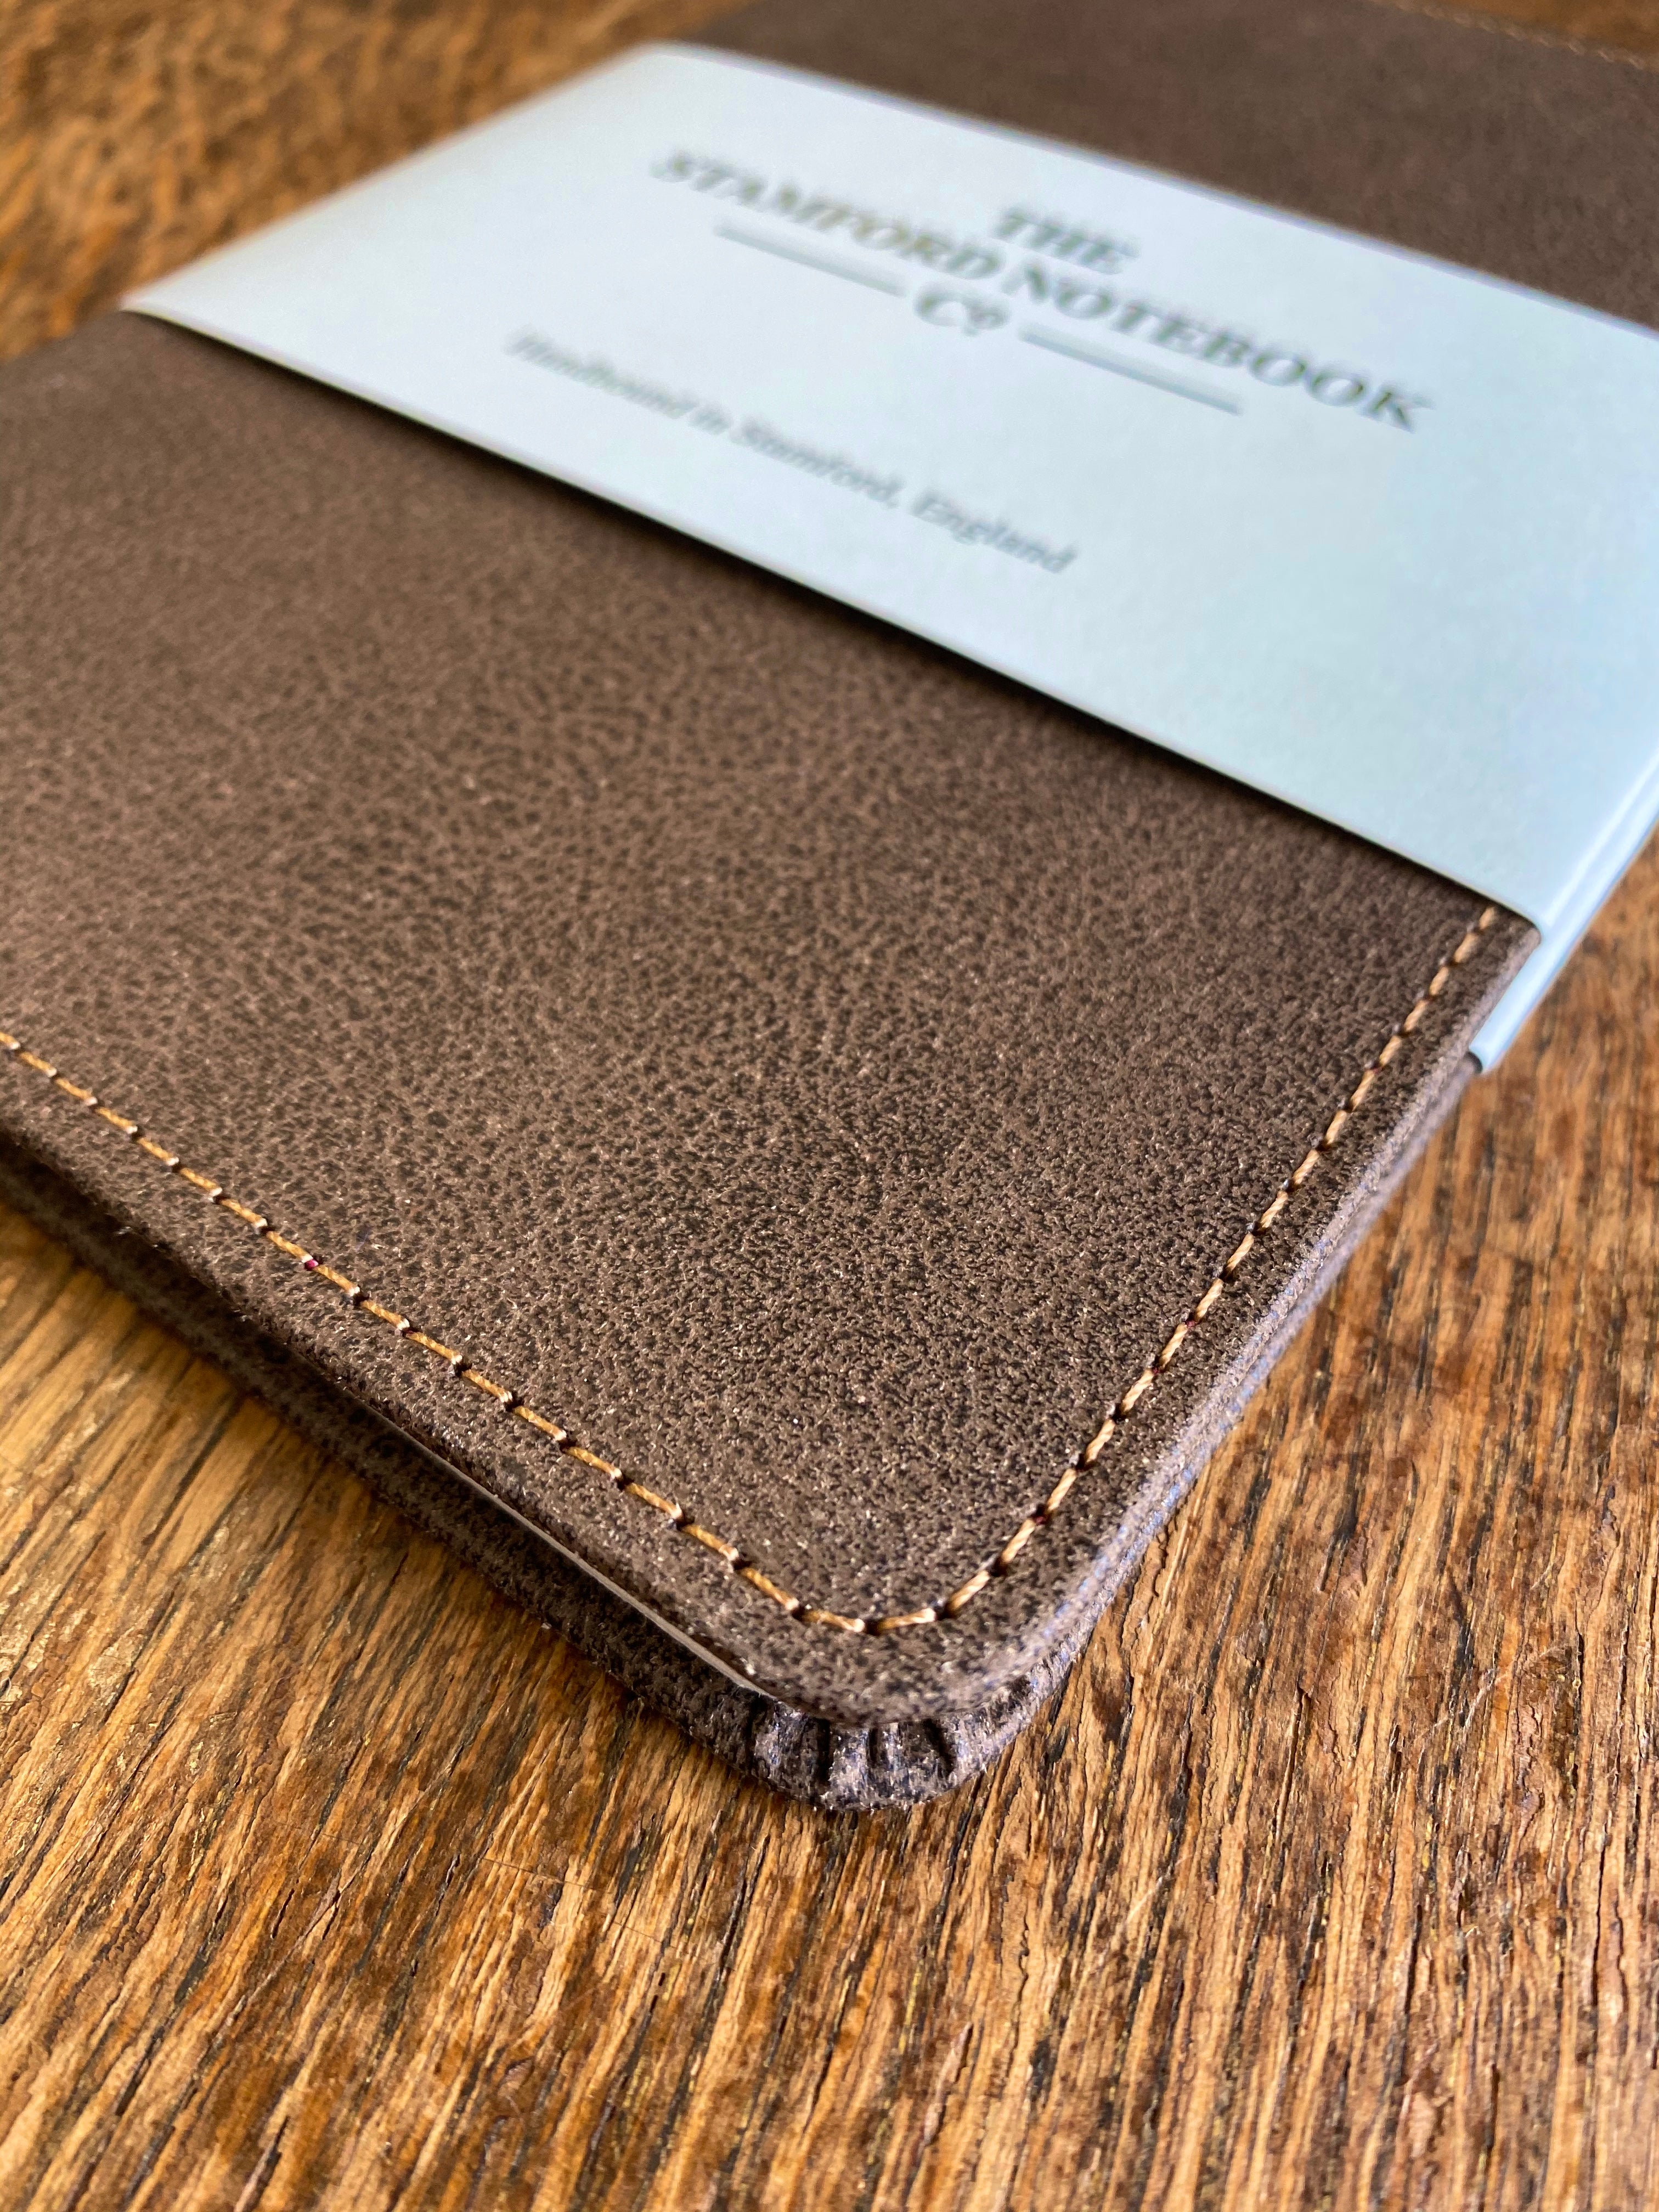 Stitched Vintage Recycled Leather Notebook Chocolate